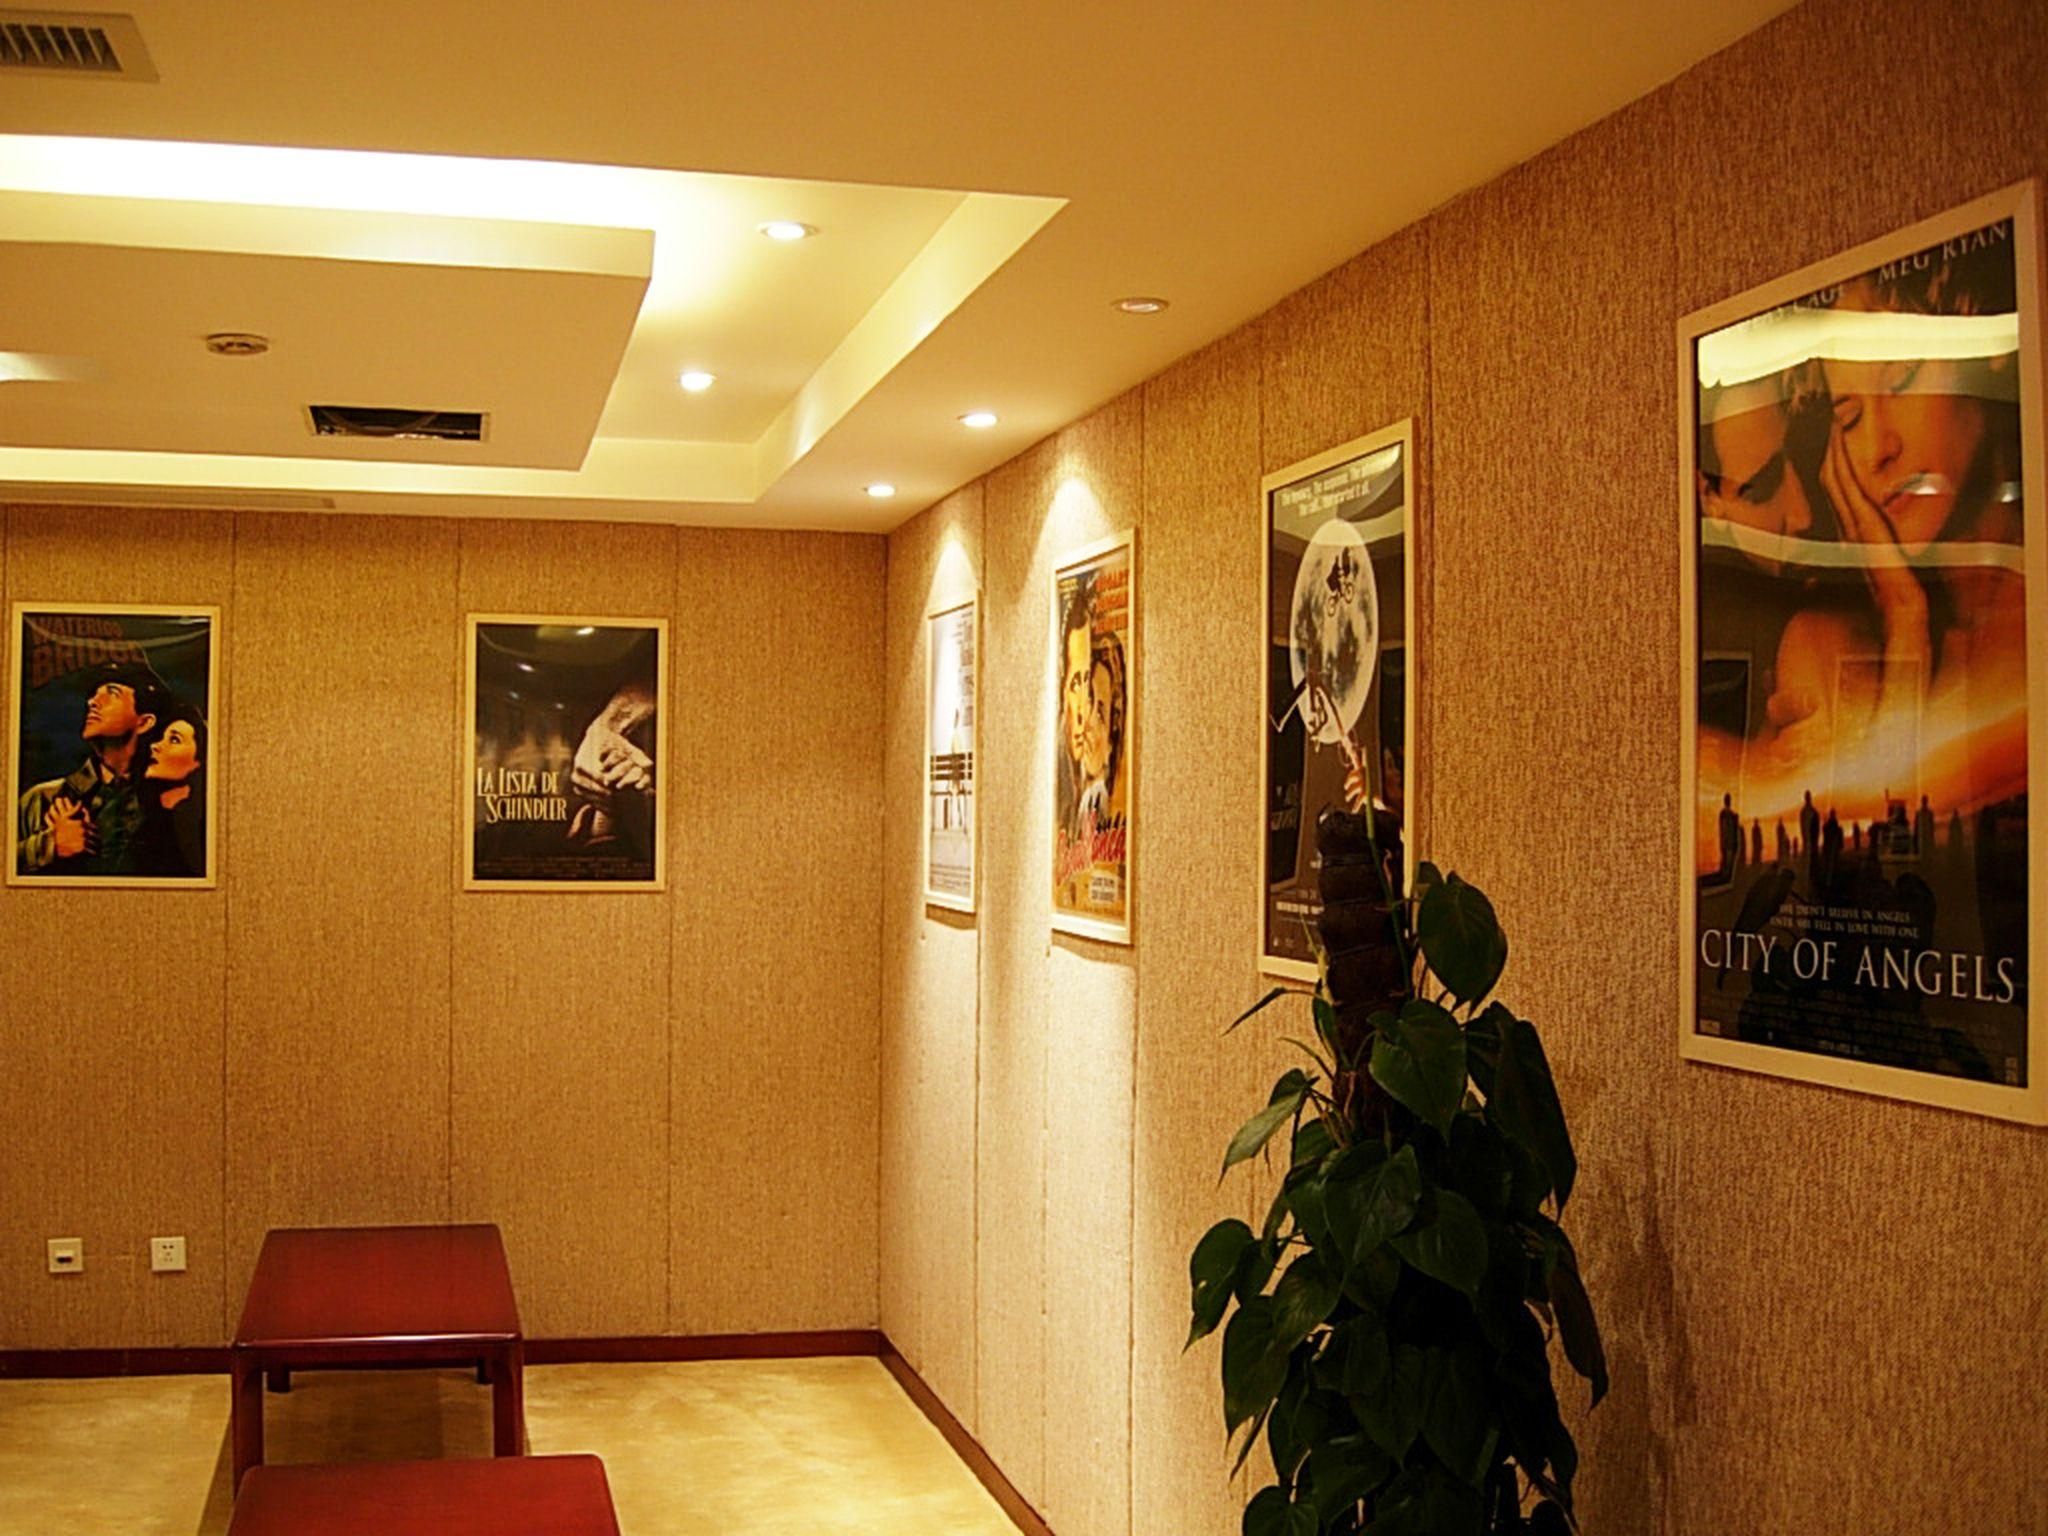 Airlines Travel Hotel Shanghai Pudong Airport Branch, Shanghai